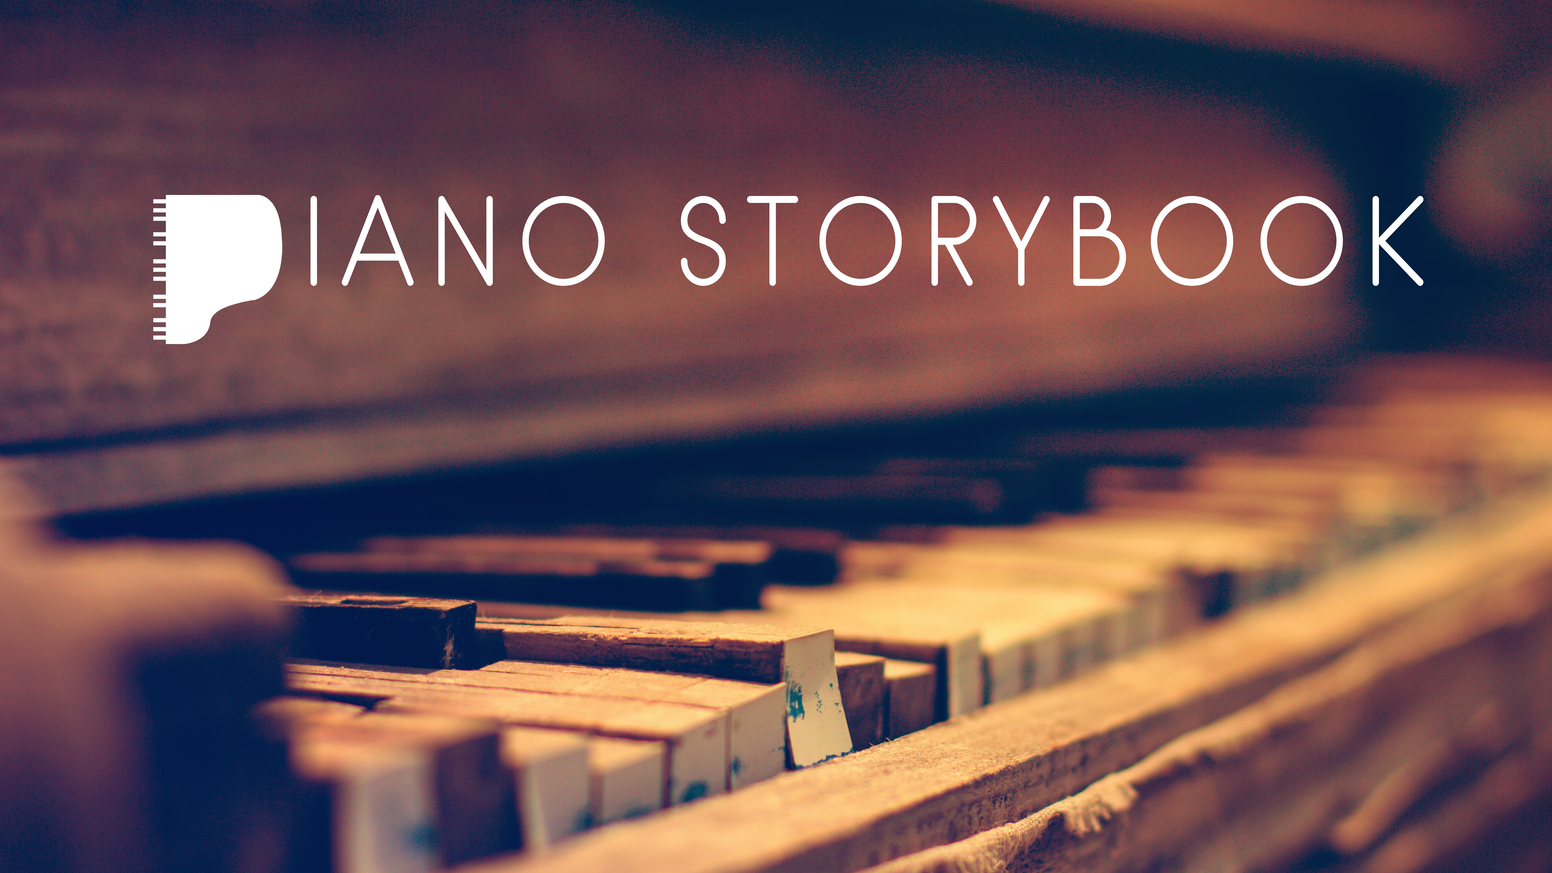 You send me an image or series of images and I will tell their story using the piano.